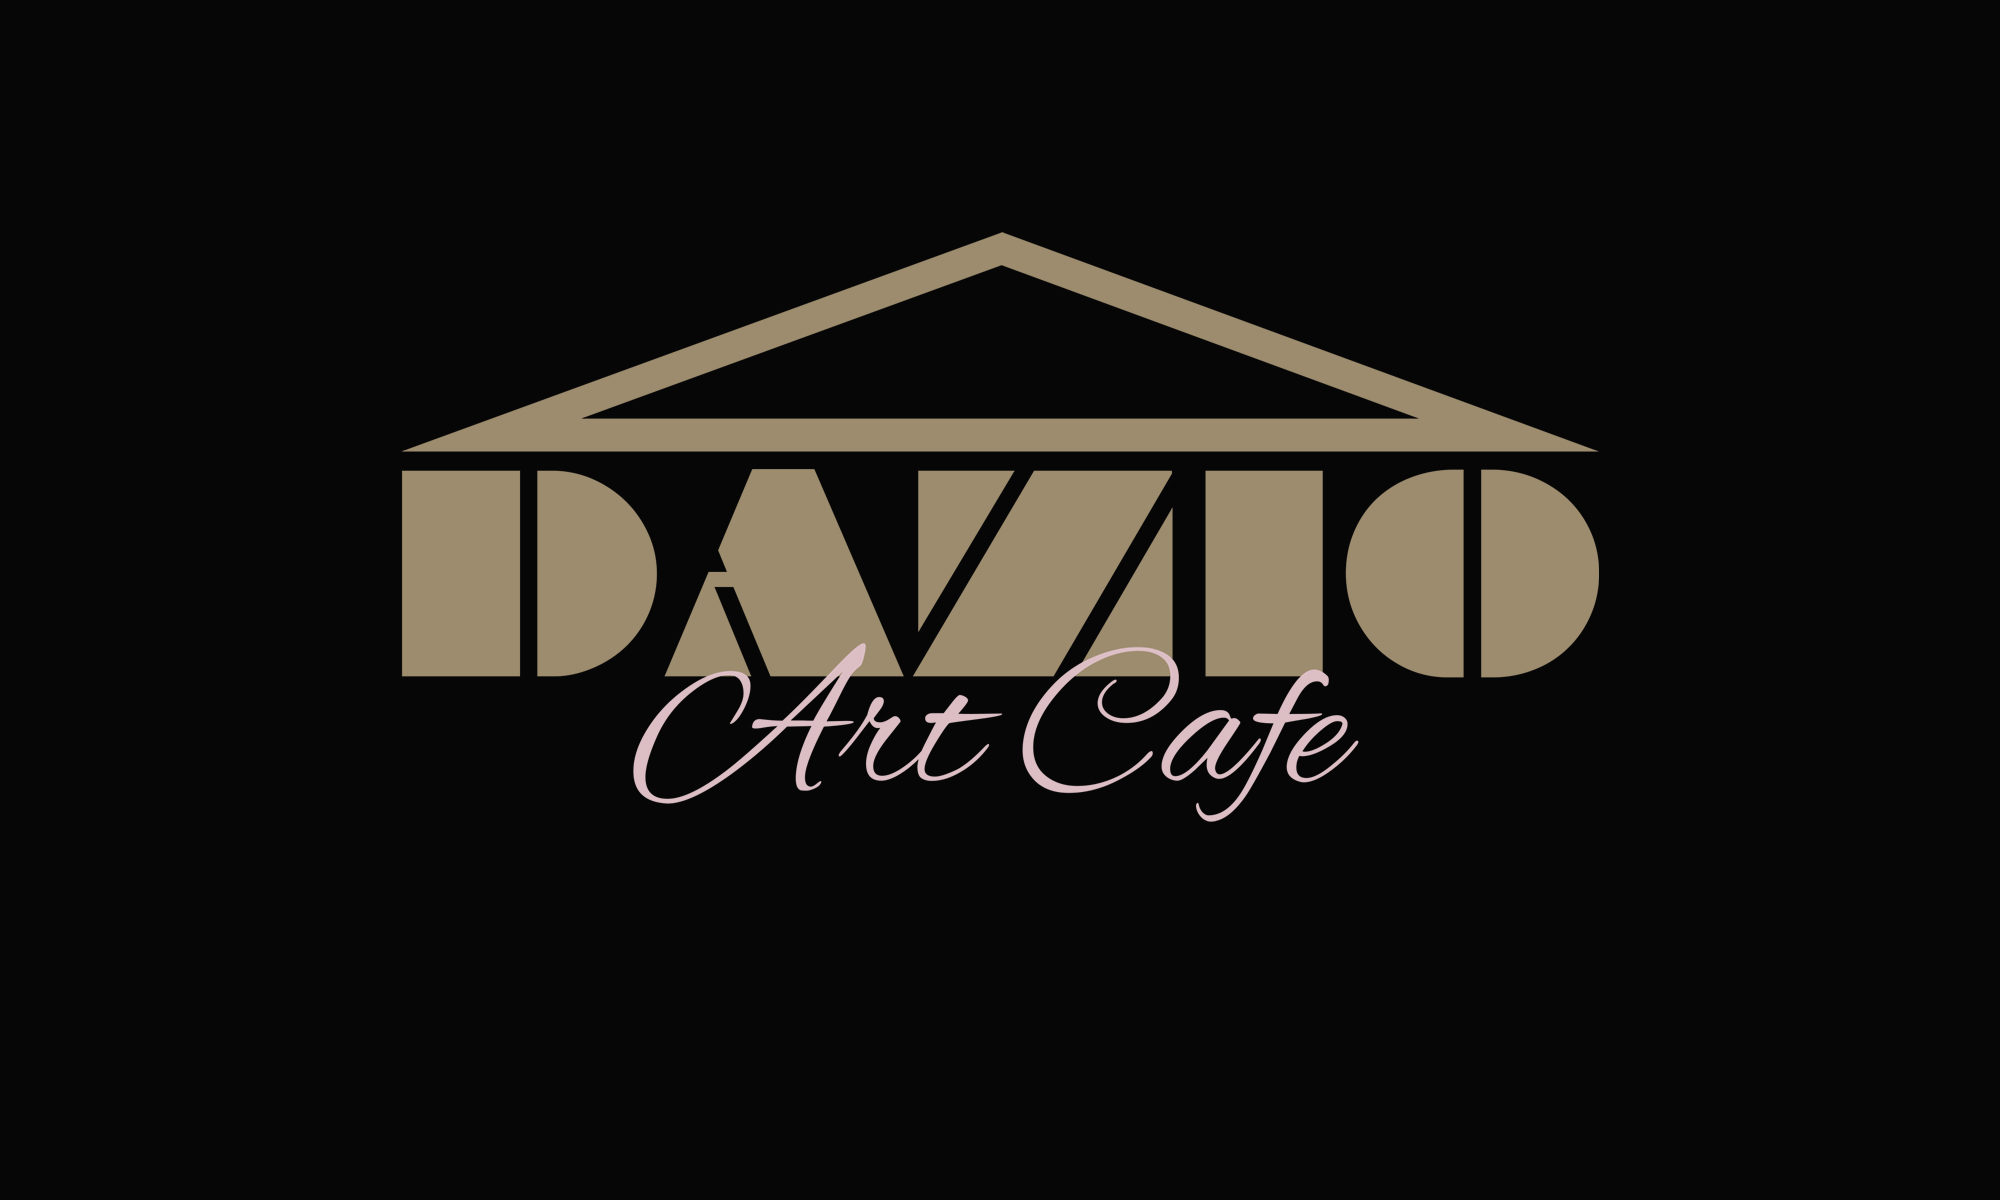 Dazio Art Cafe